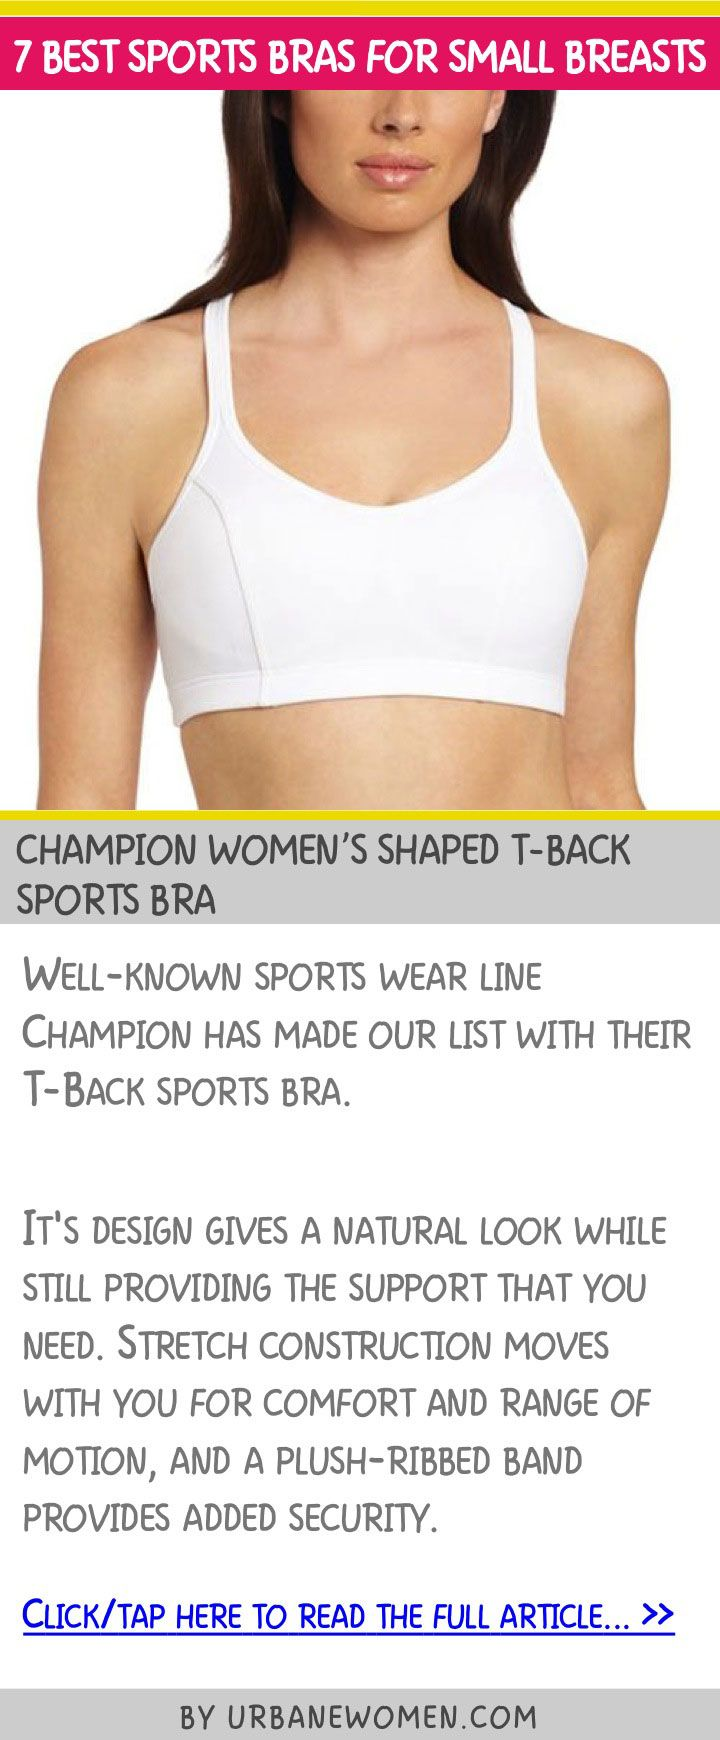 919b0fc08f 7 best sports bras for small breasts - Champion Women s Shaped T-Back  sports bra